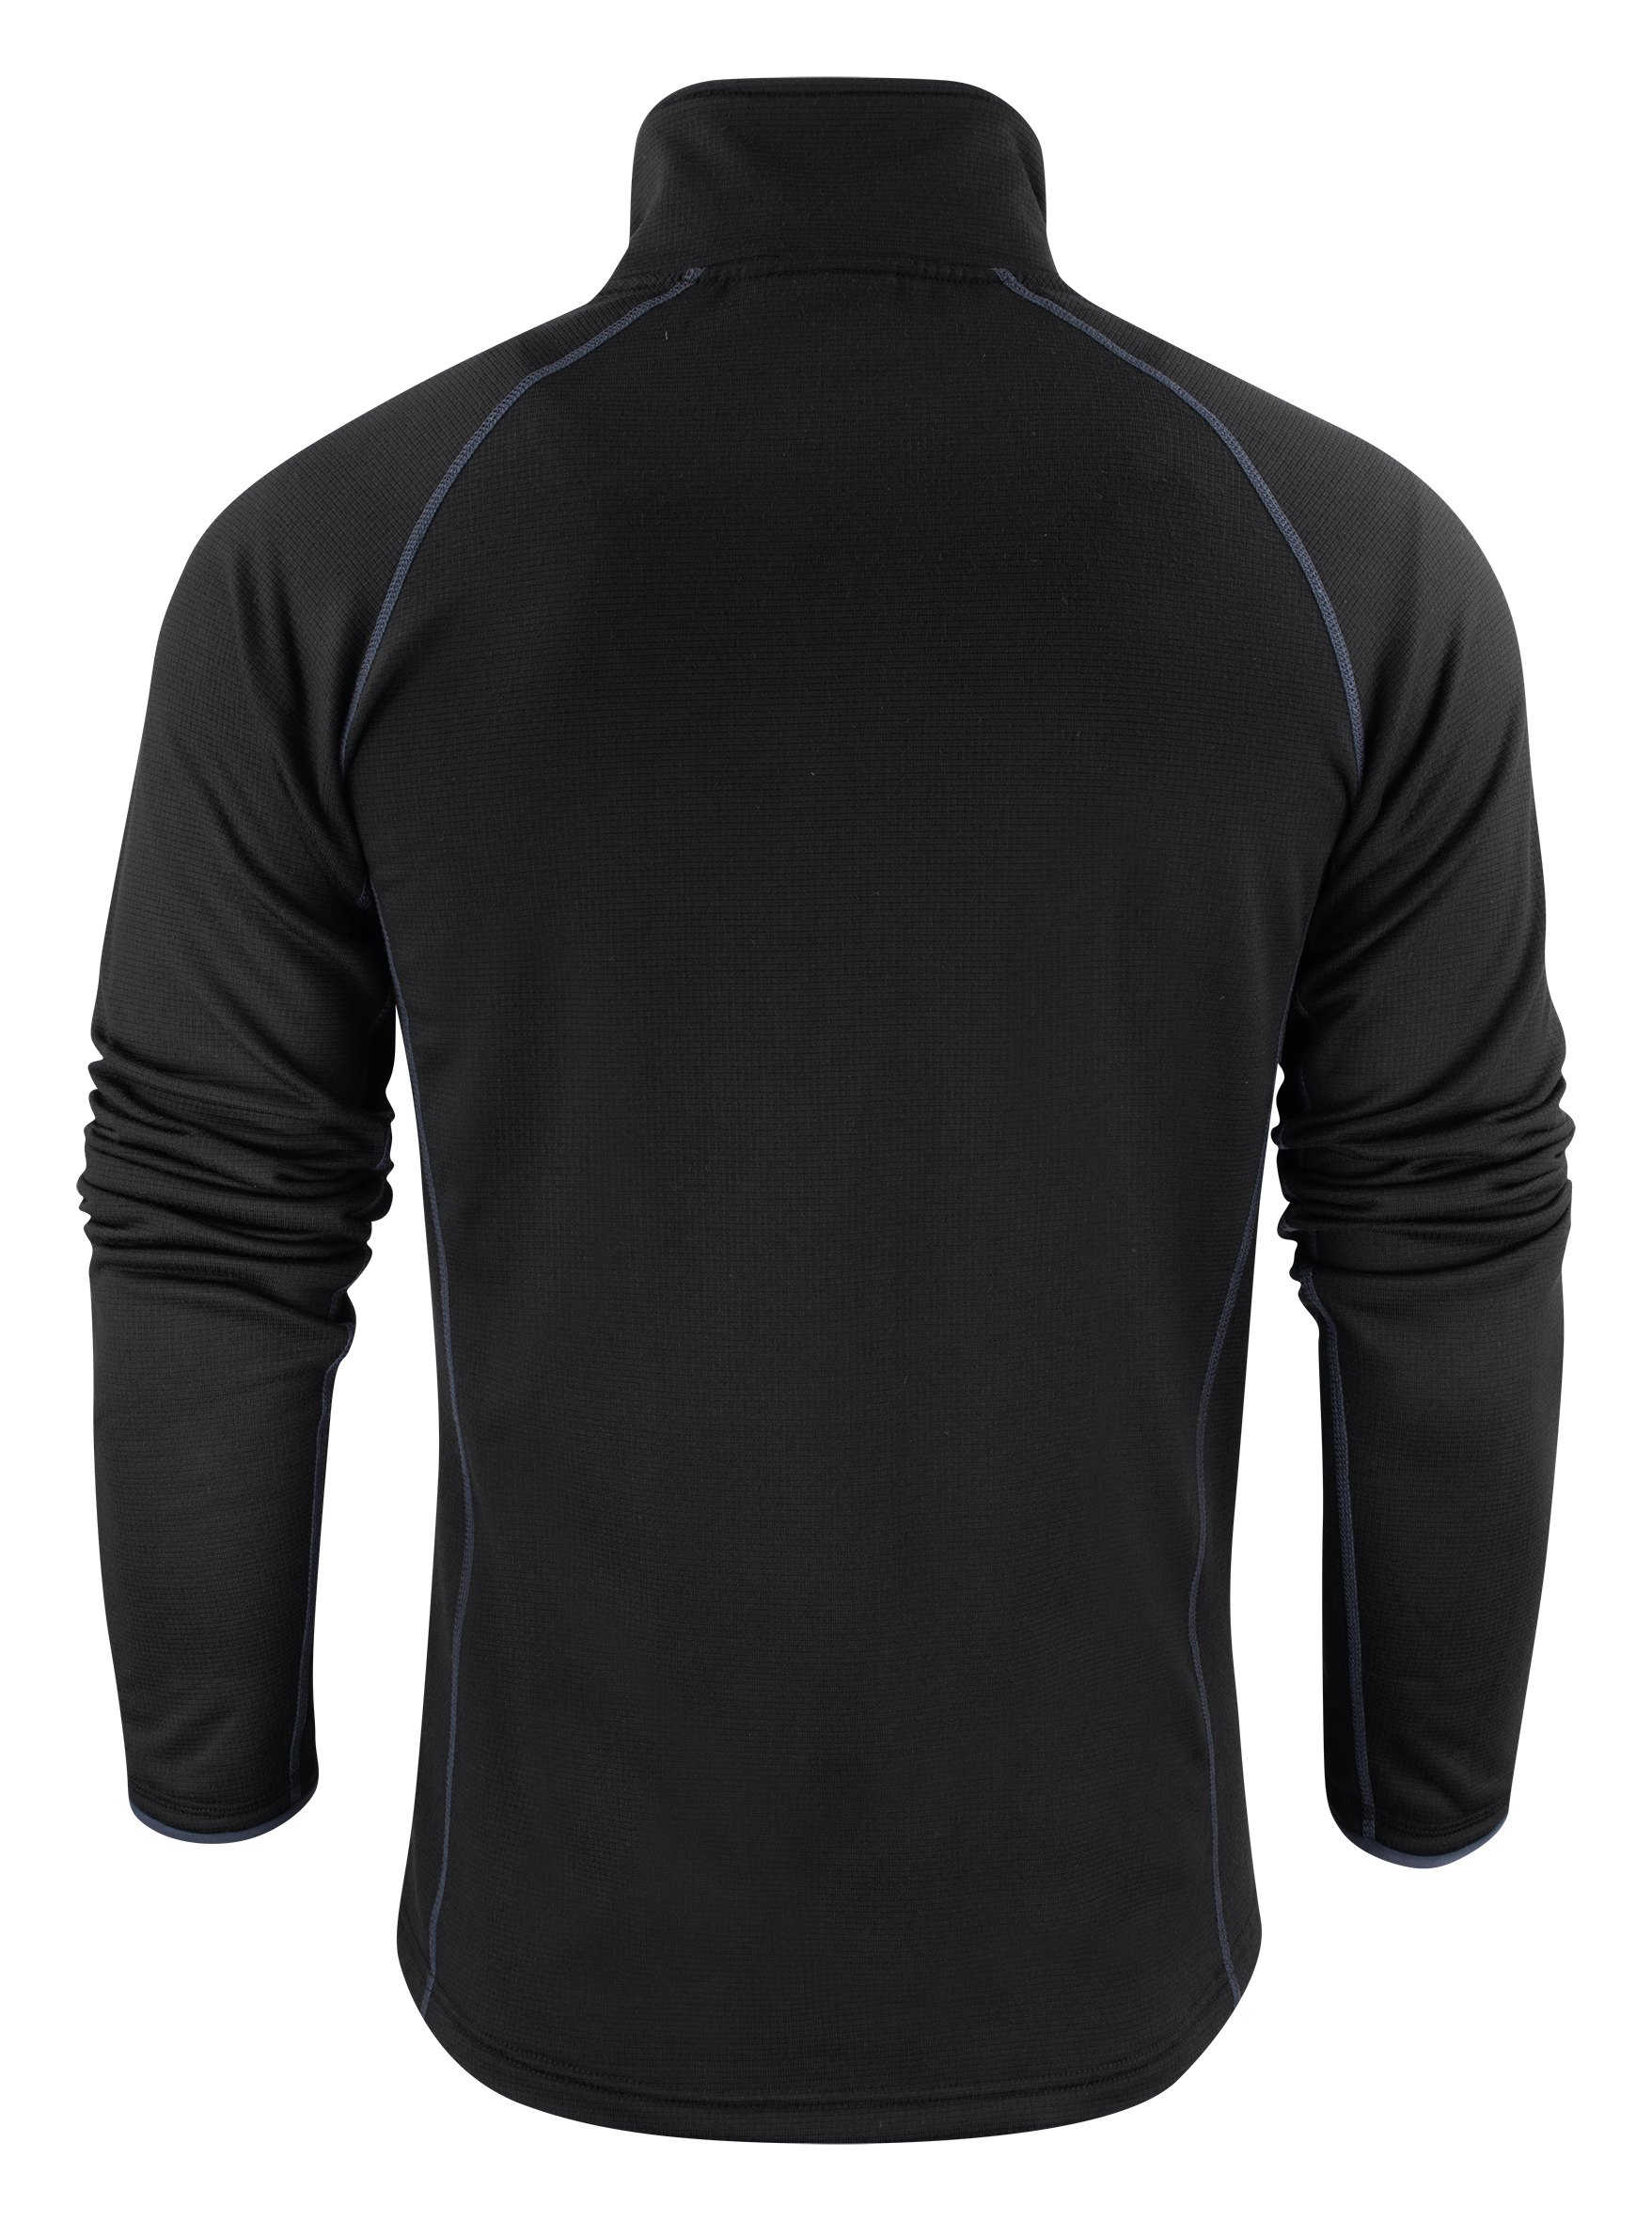 Mens Miles Jacket in 900 Black (Back View)